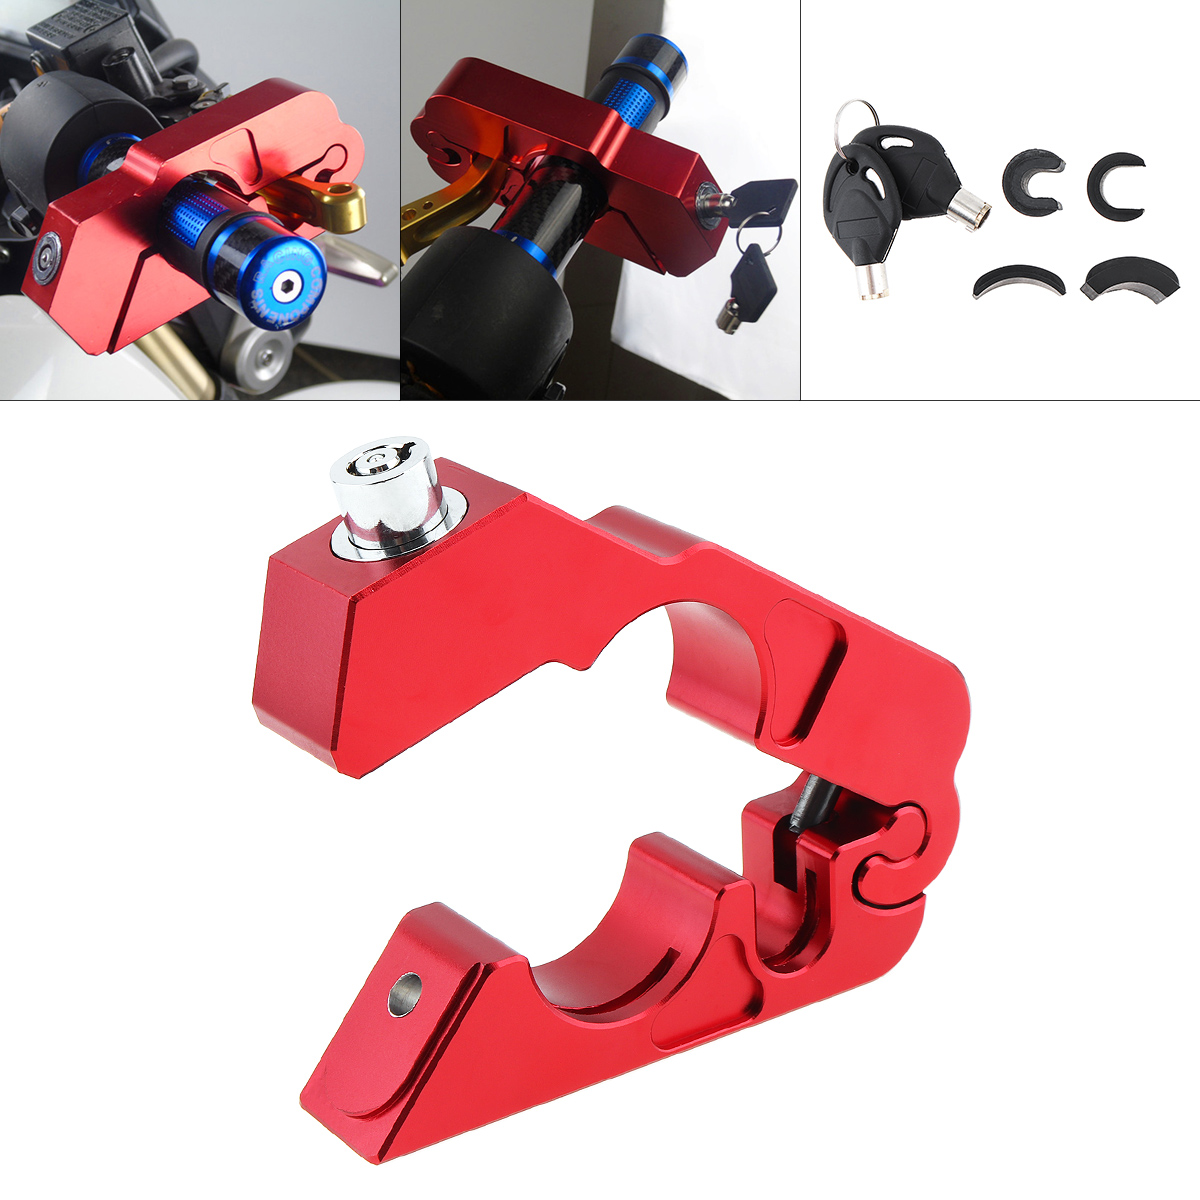 CNC Handlebar Grip Lock Street Bike Scooter Security Safety Lock Brake Clutch Levers Locks Theft Protection Lock for Motorcycle in Handlebar from Automobiles Motorcycles